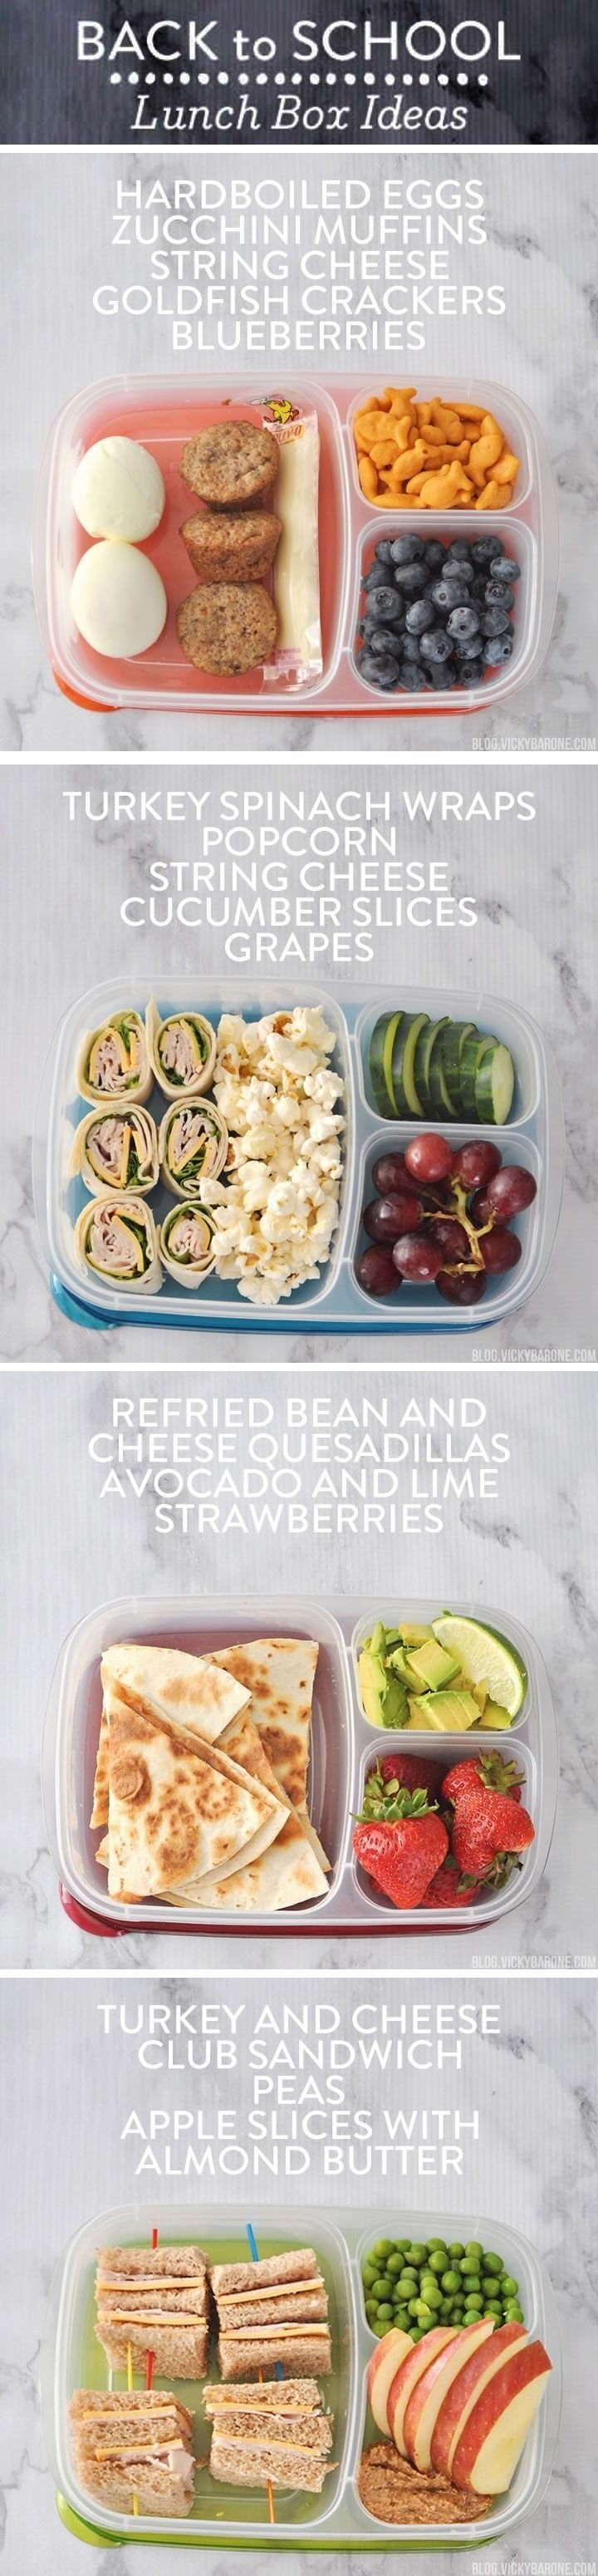 265 best back to school crafts/lunch ideas images on pinterest